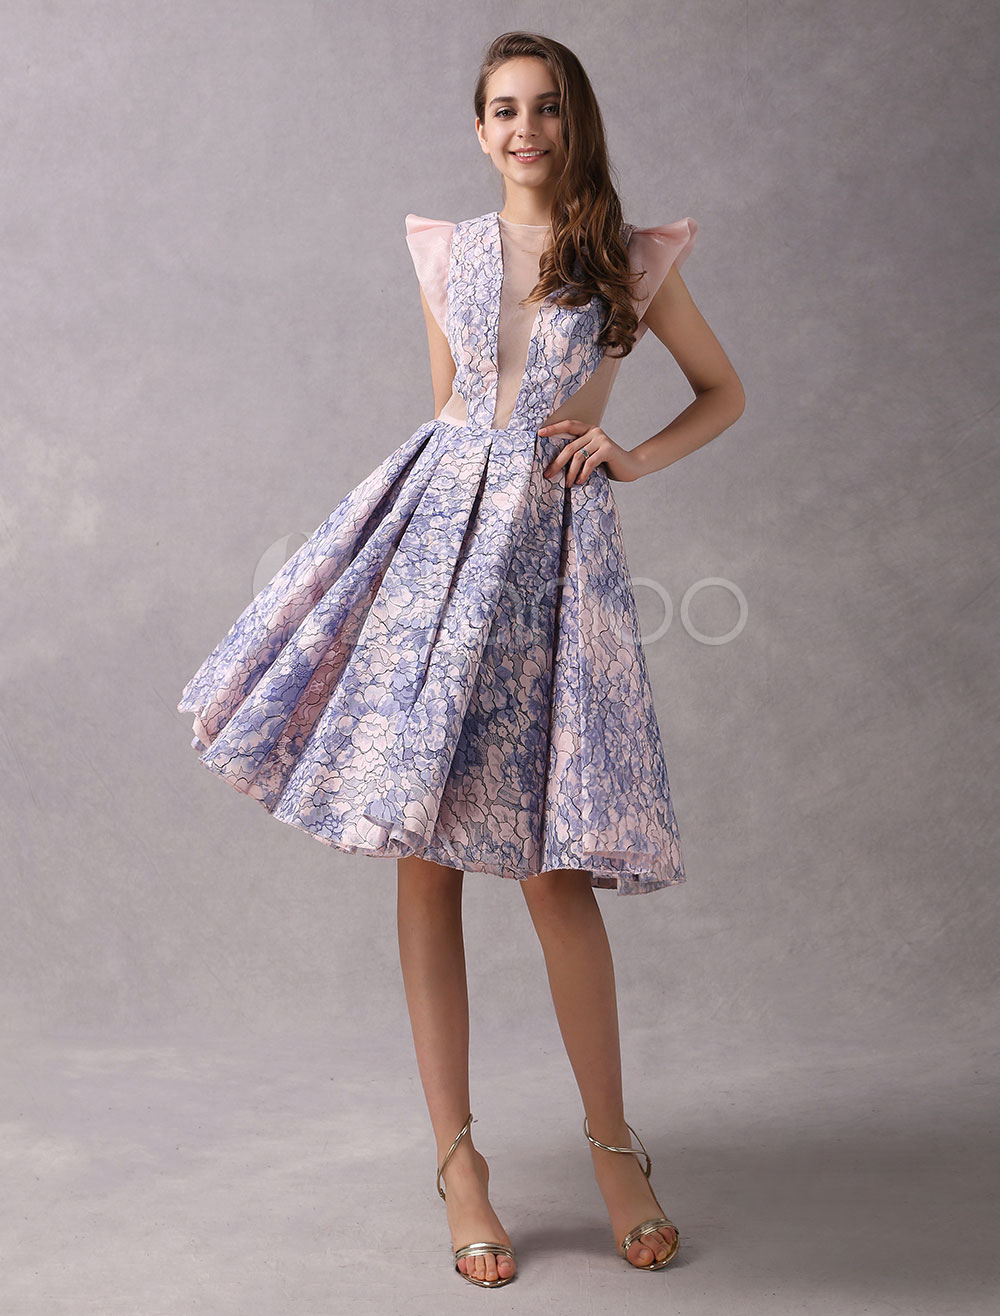 Buy Cocktail Dresses Lace Short Party Dresses Soft Pink Organza Illusion Knee Length Graduation Dress for $178.49 in Milanoo store